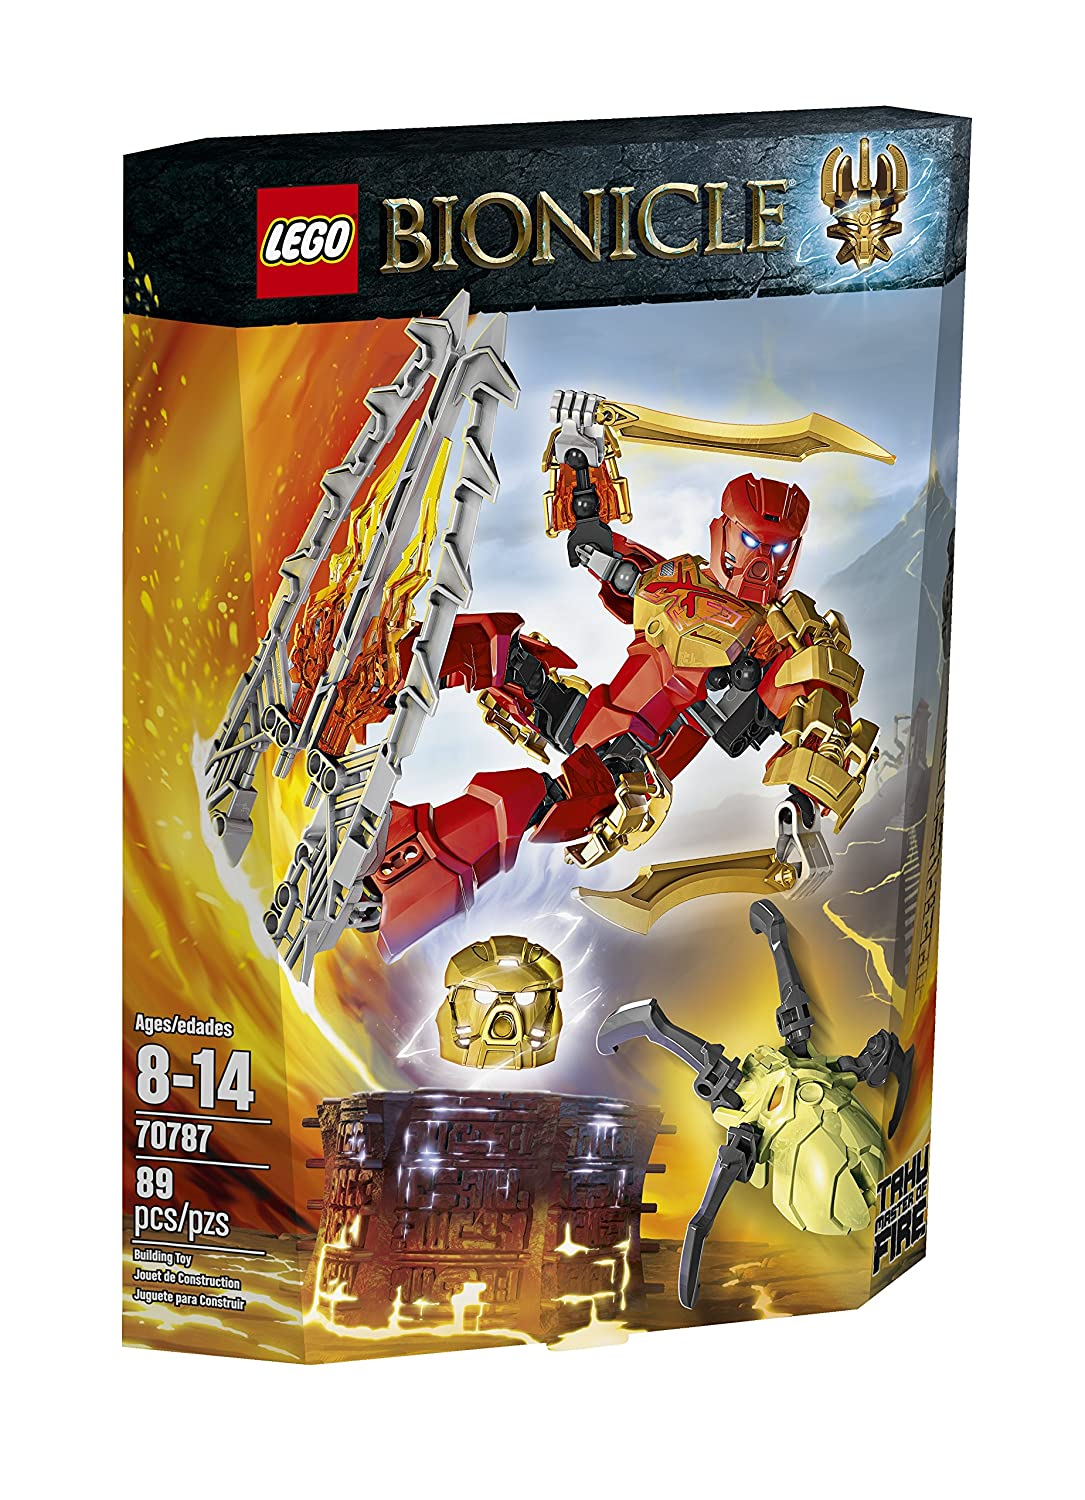 15 Best Lego BIONICLE Sets Reviews of 2021 12